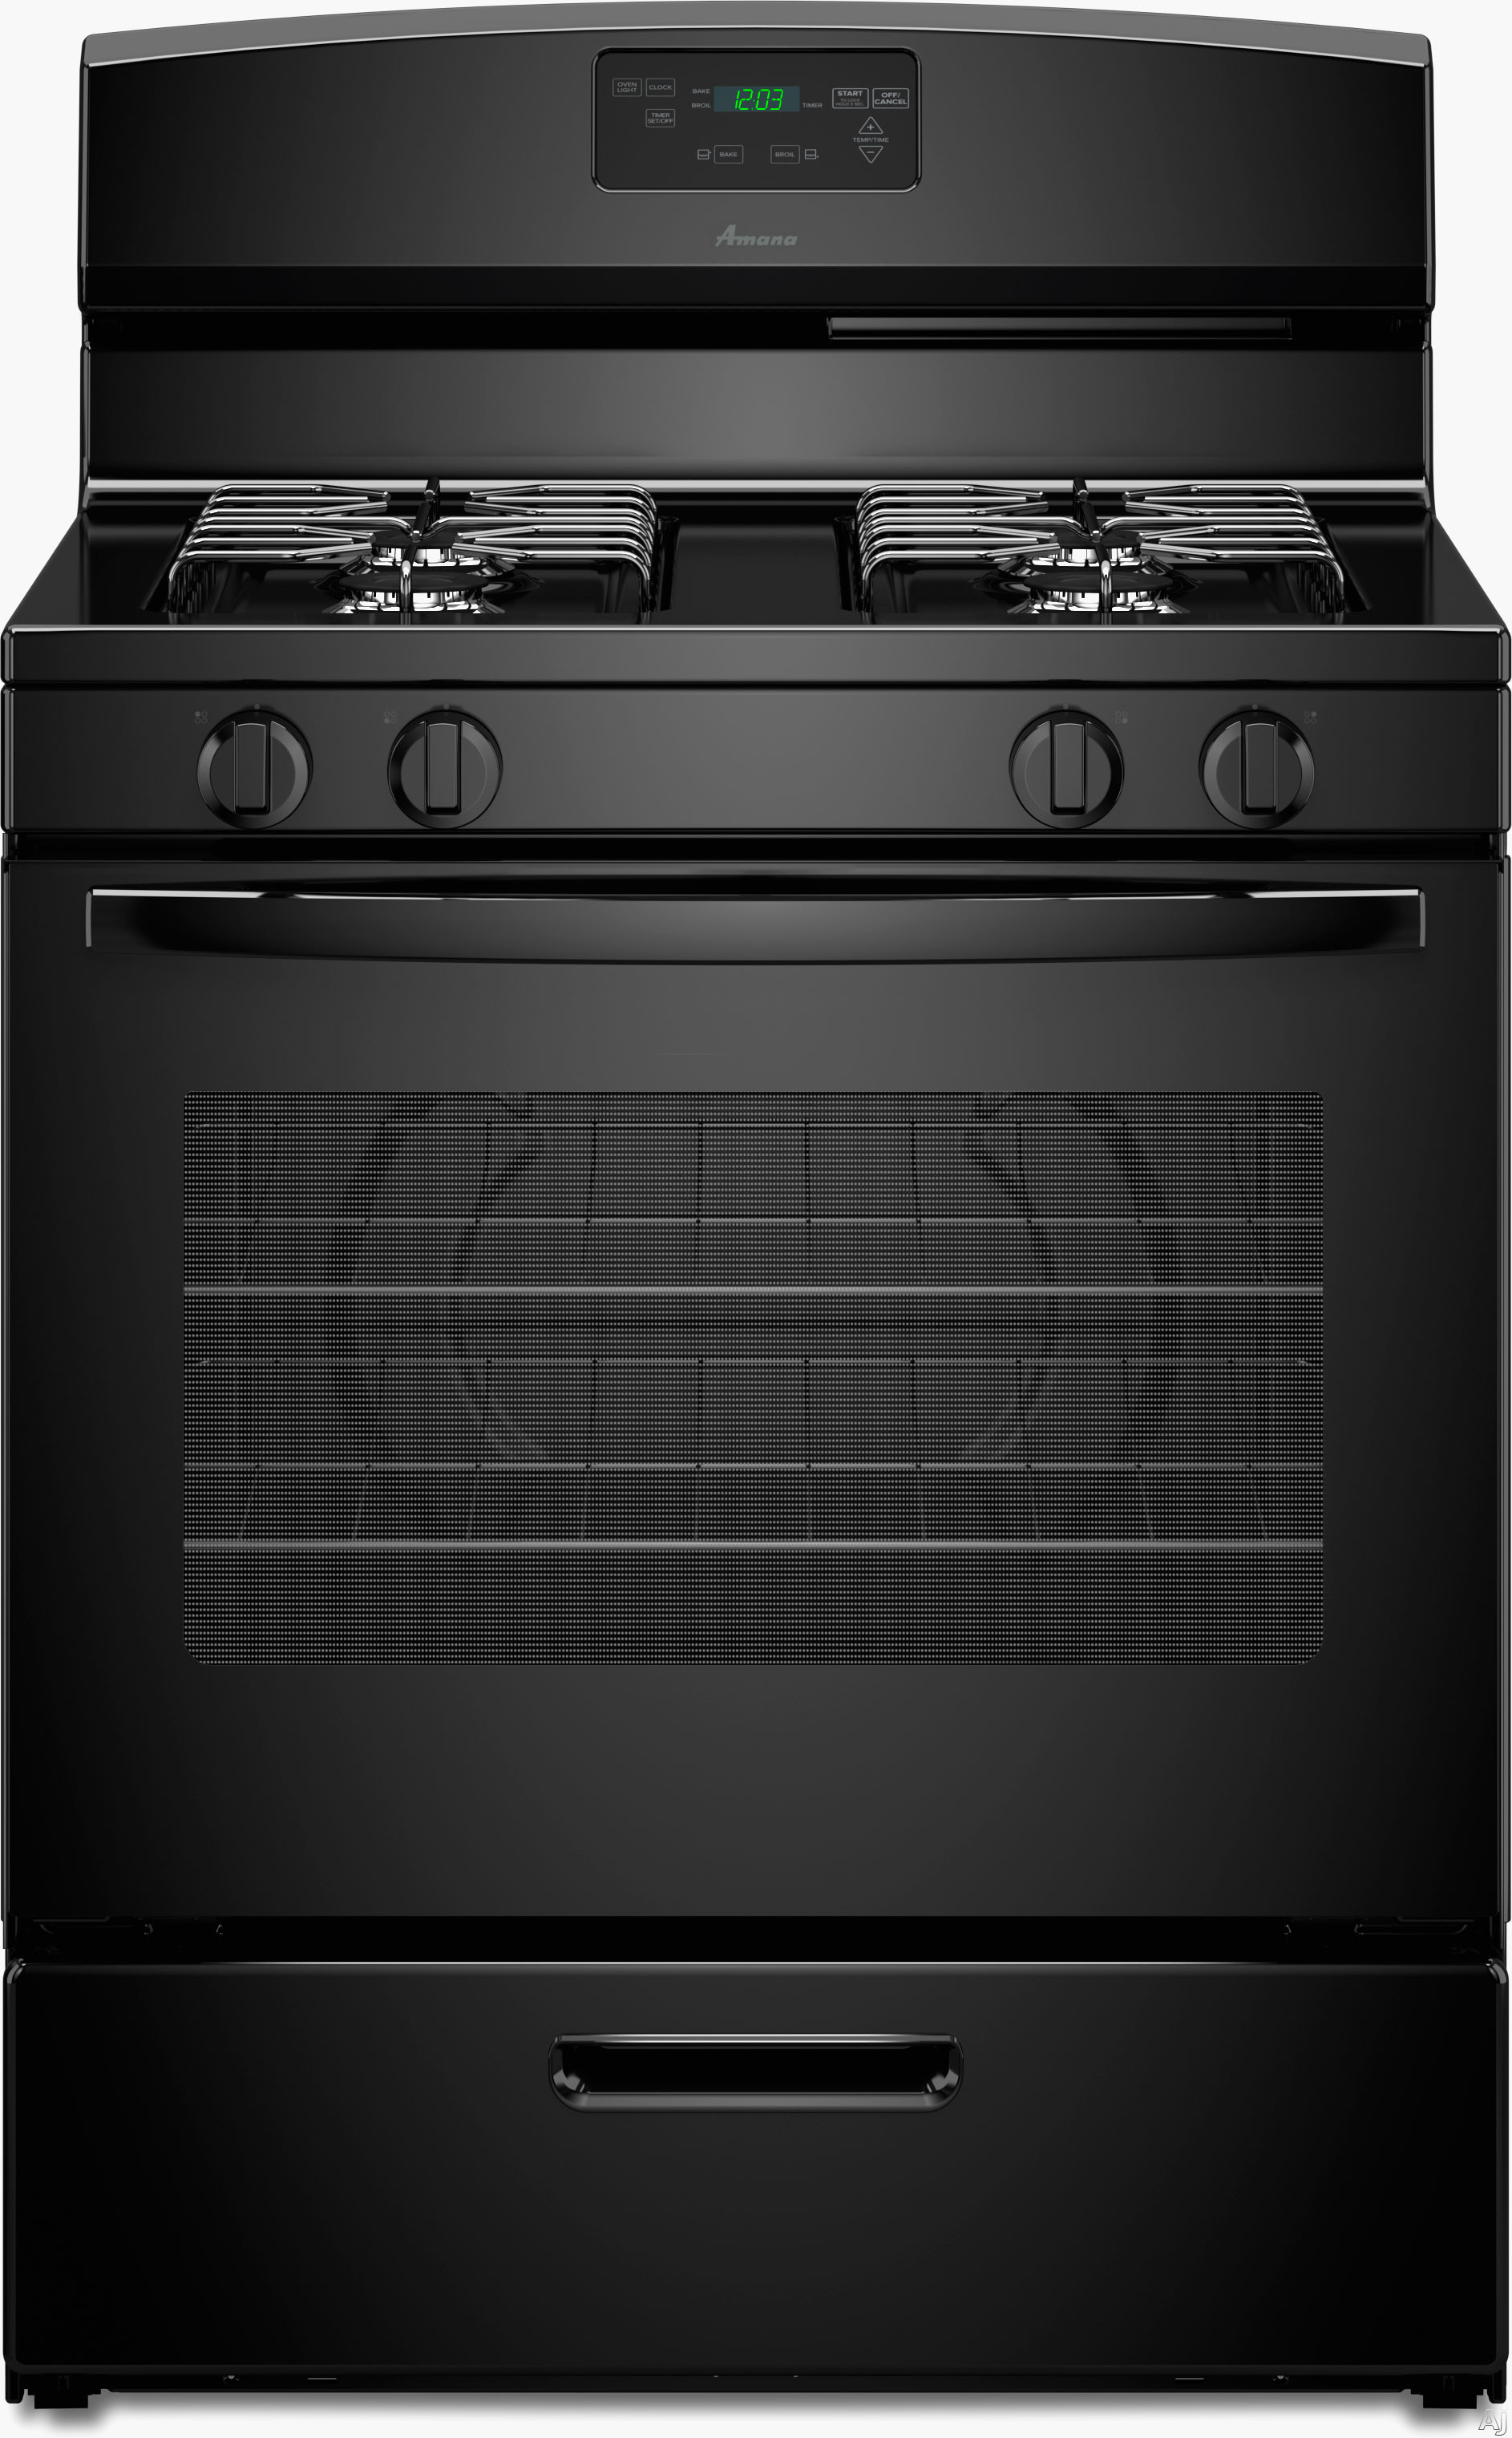 Amana Agr5330b 30 Inch Freestanding Gas Range With Boiler Drawer, Extra-large Window, Easy Touch Controls, 4 Sealed Burners And 5.1 Cu. Ft. Oven Capacity